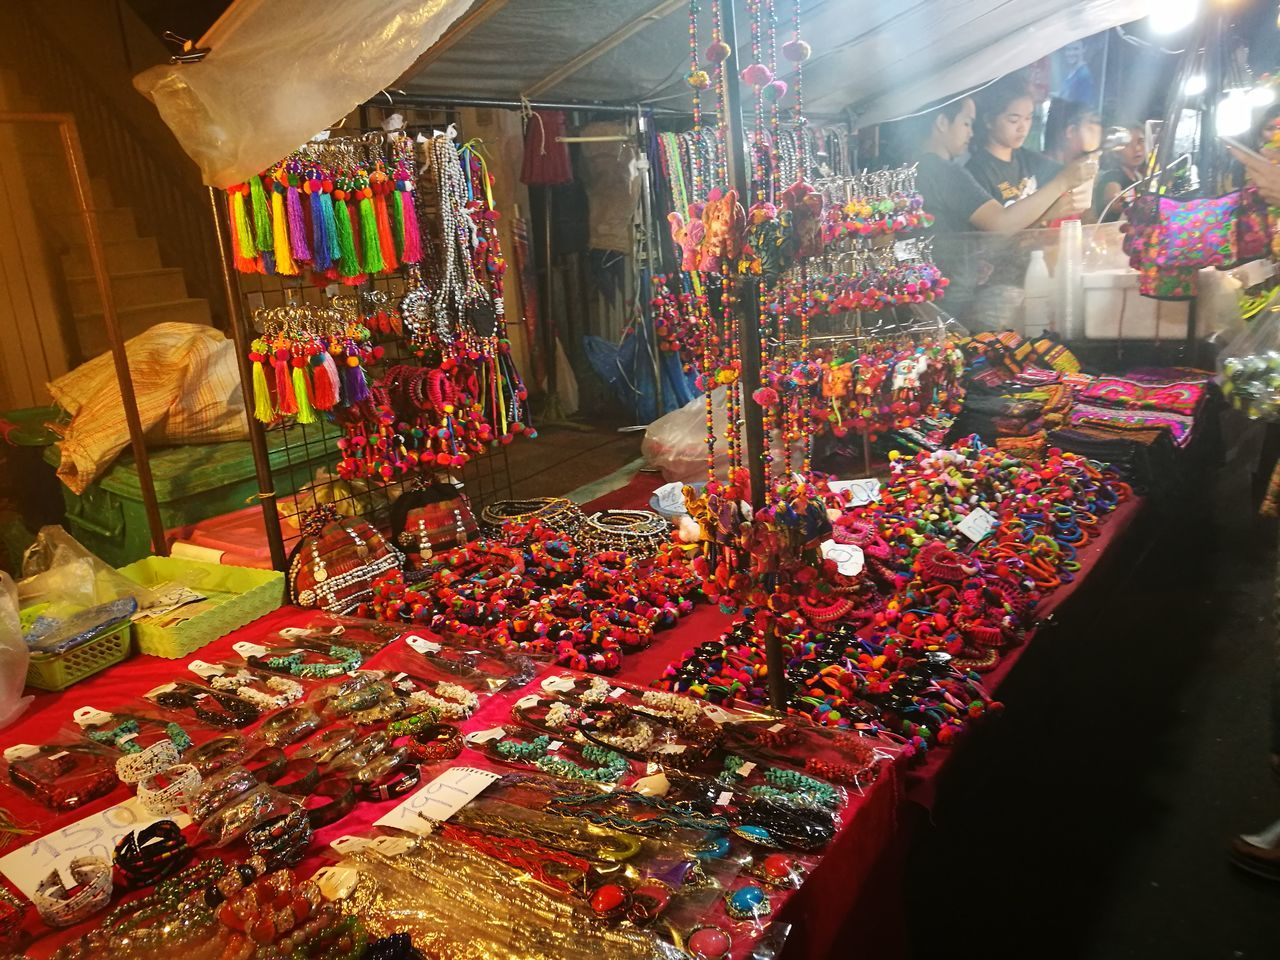 Business Holiday - Event Market Night Gift Hello World HuaweiP9 Relaxing OpenWorld Hanging Out Noedit Thailand Chiang Mai Celebration Multi Colored Christmas Decoration Christmas Variation Illuminated No People Christmas Ornament Business Cultures Holiday - Event Market Stall